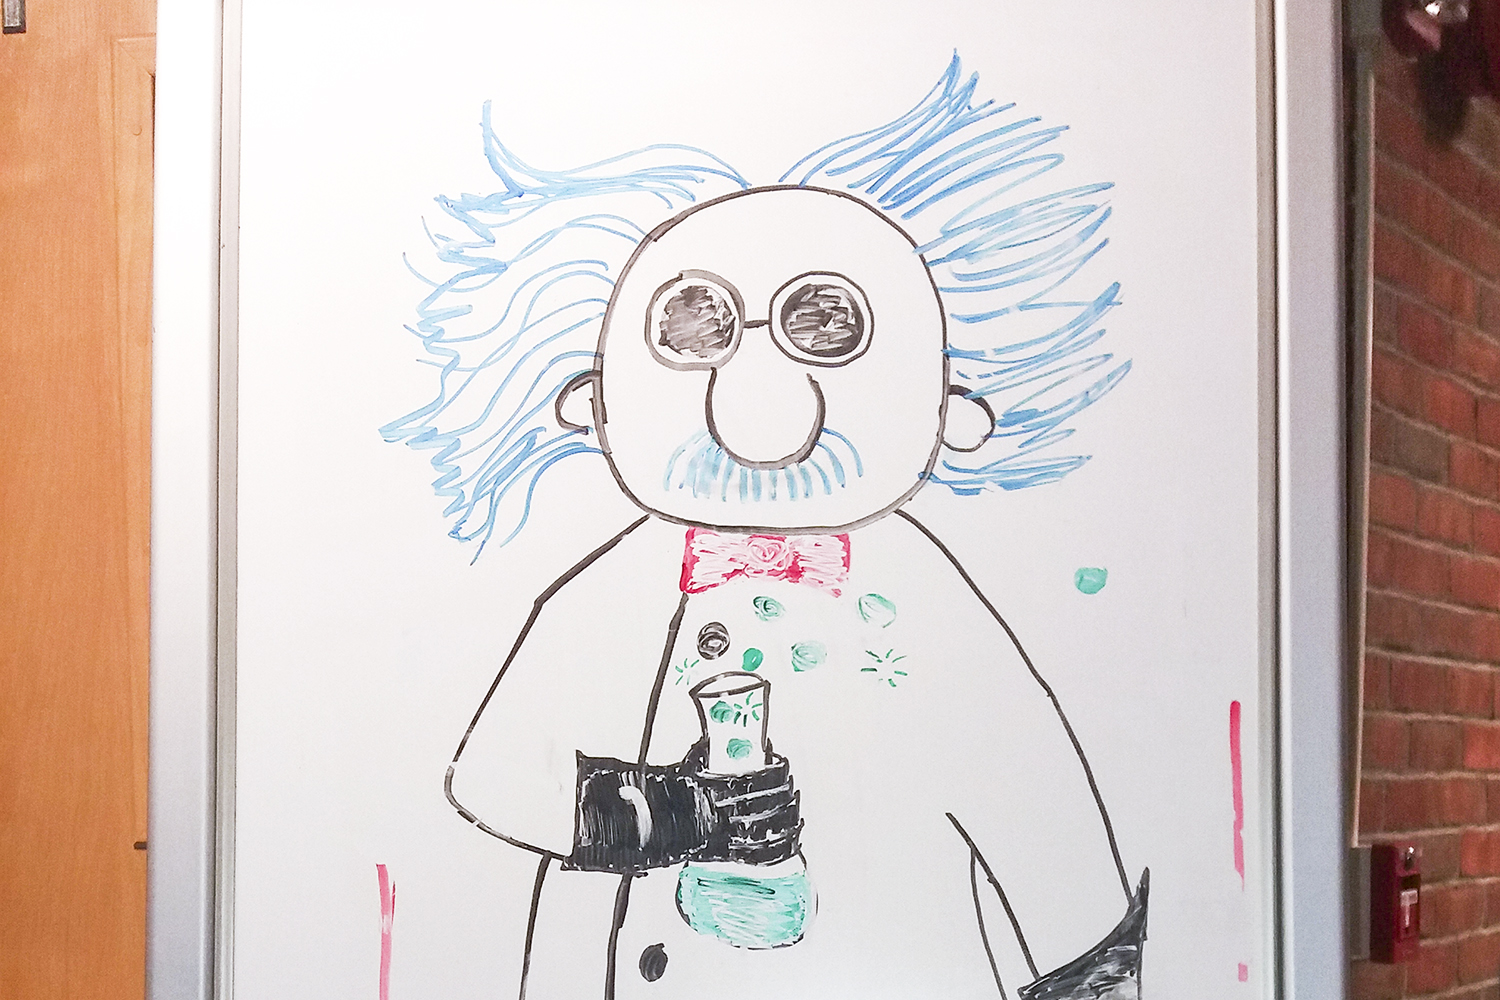 An illustration of a science professor drawn on a whiteboard.